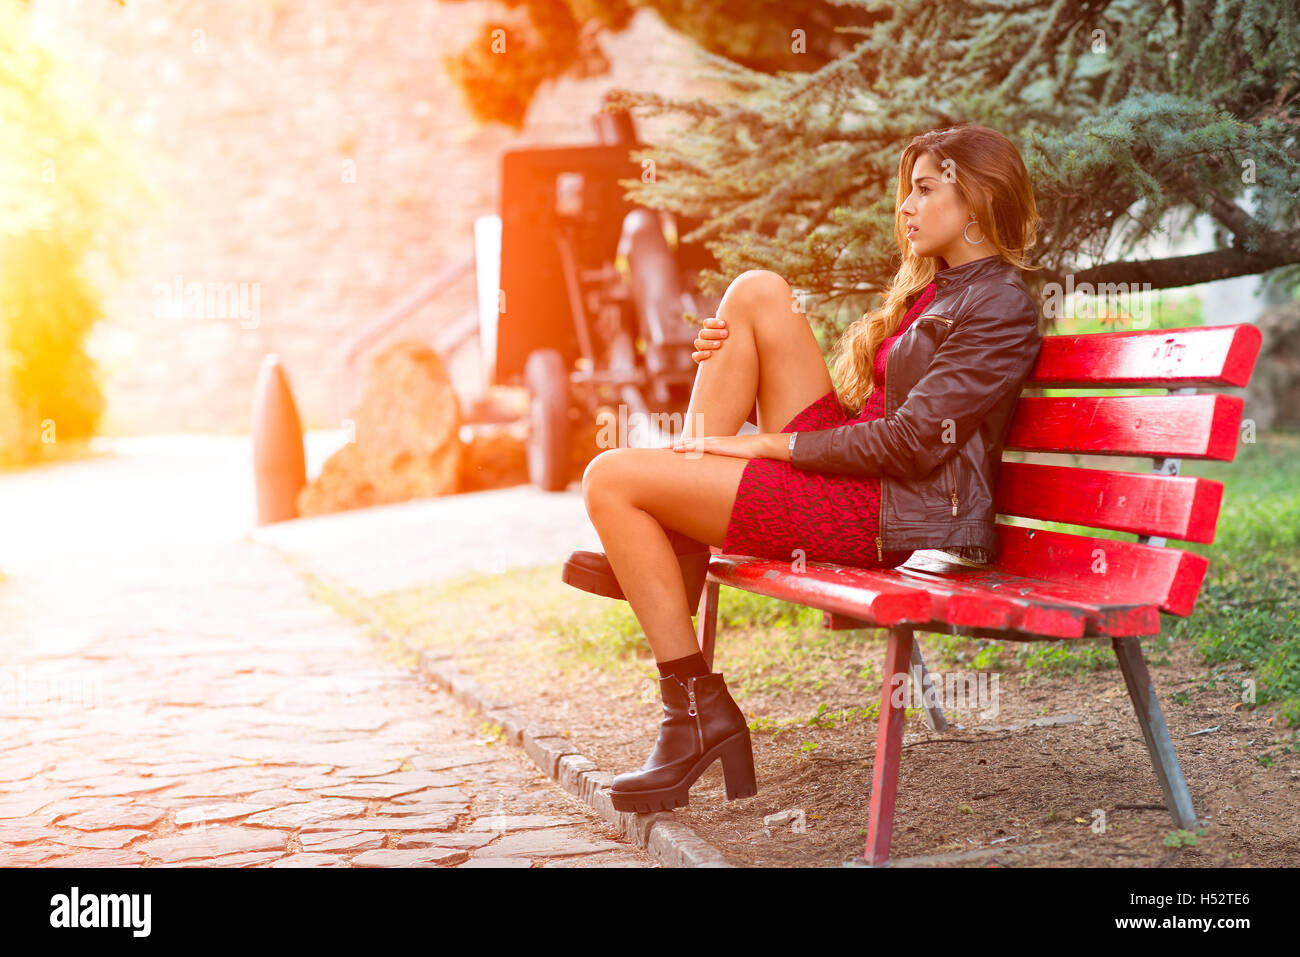 Girl in miniskirt sitting on a red bench - Stock Image